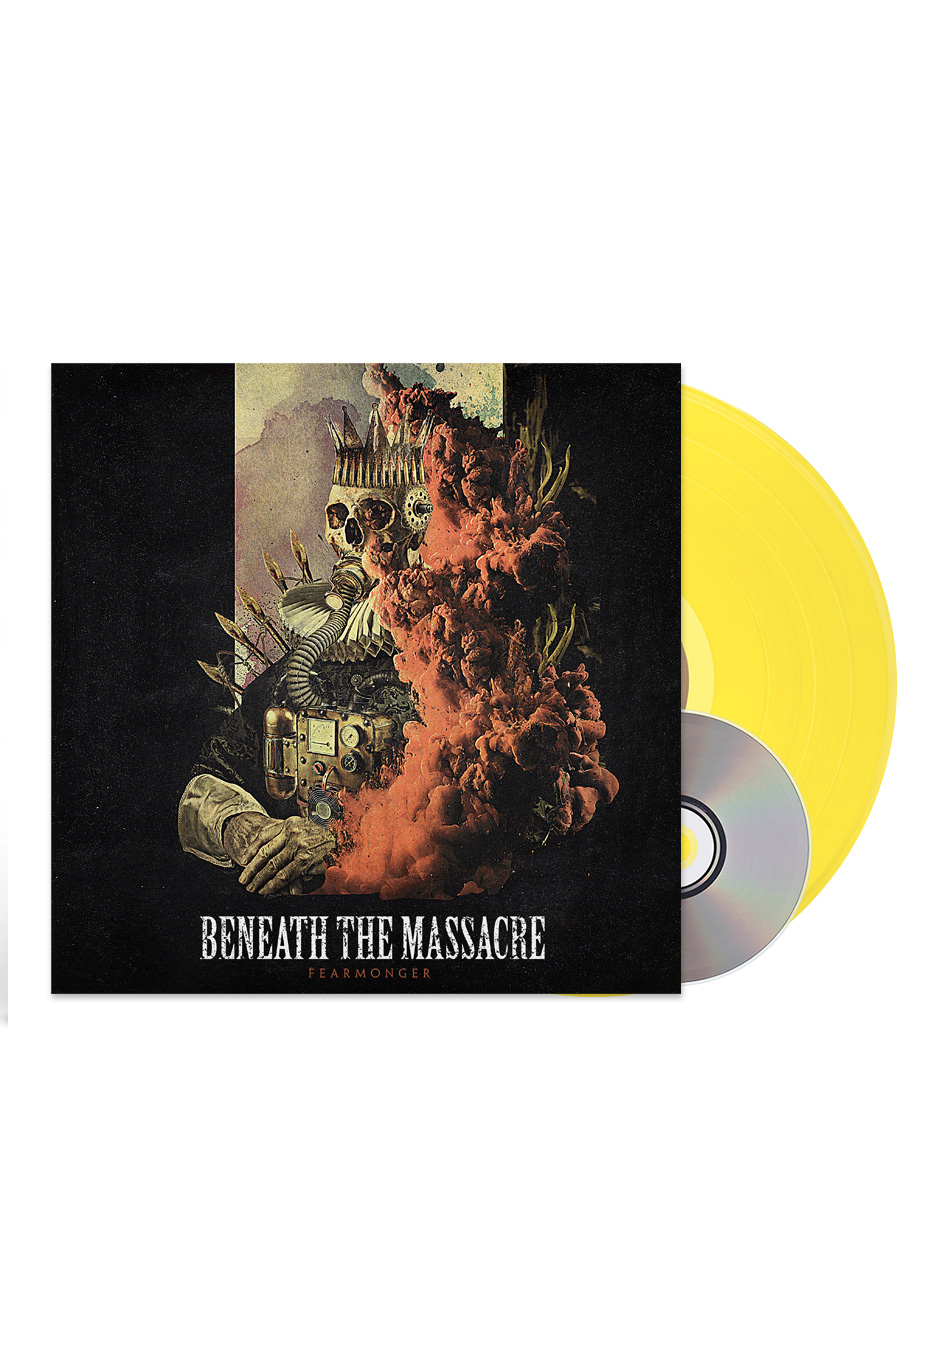 Beneath the Massacre - Fearmonger. Ltd Ed. Yellow LP with CD